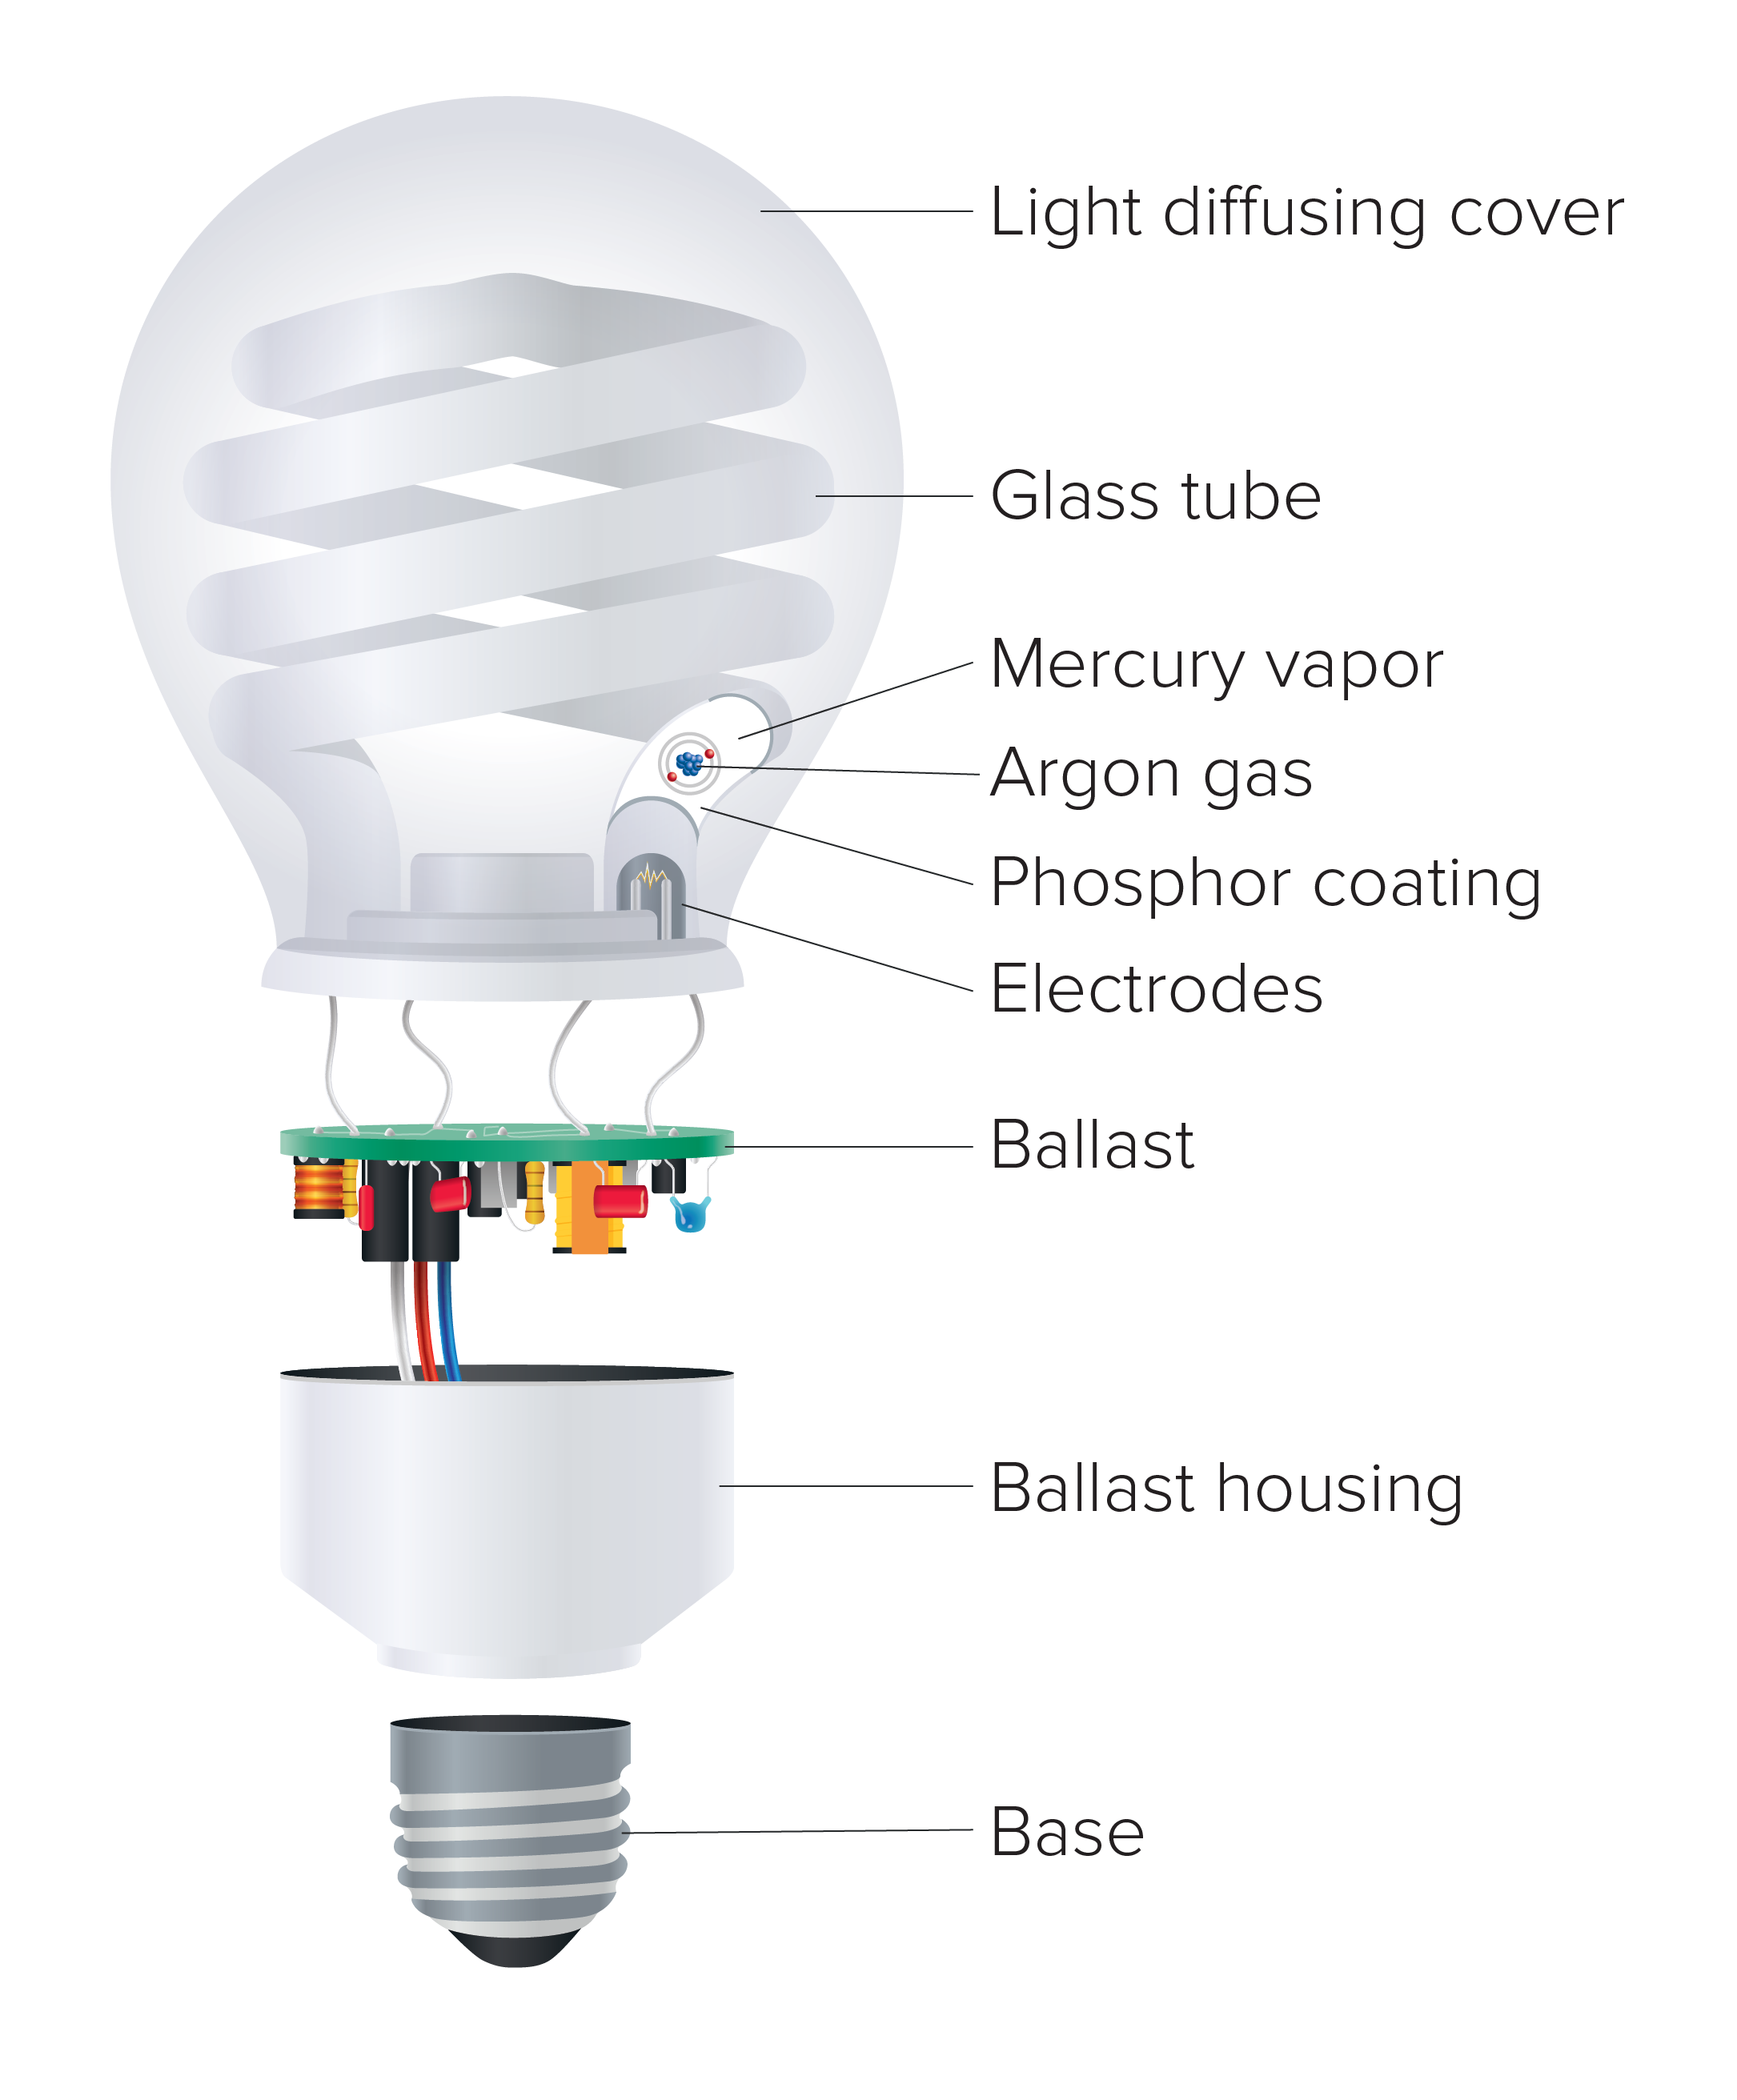 Regency Lighting u2013 What are CFL bulbs and where should they be used? Diagram of & What are CFL bulbs and where should they be used? azcodes.com